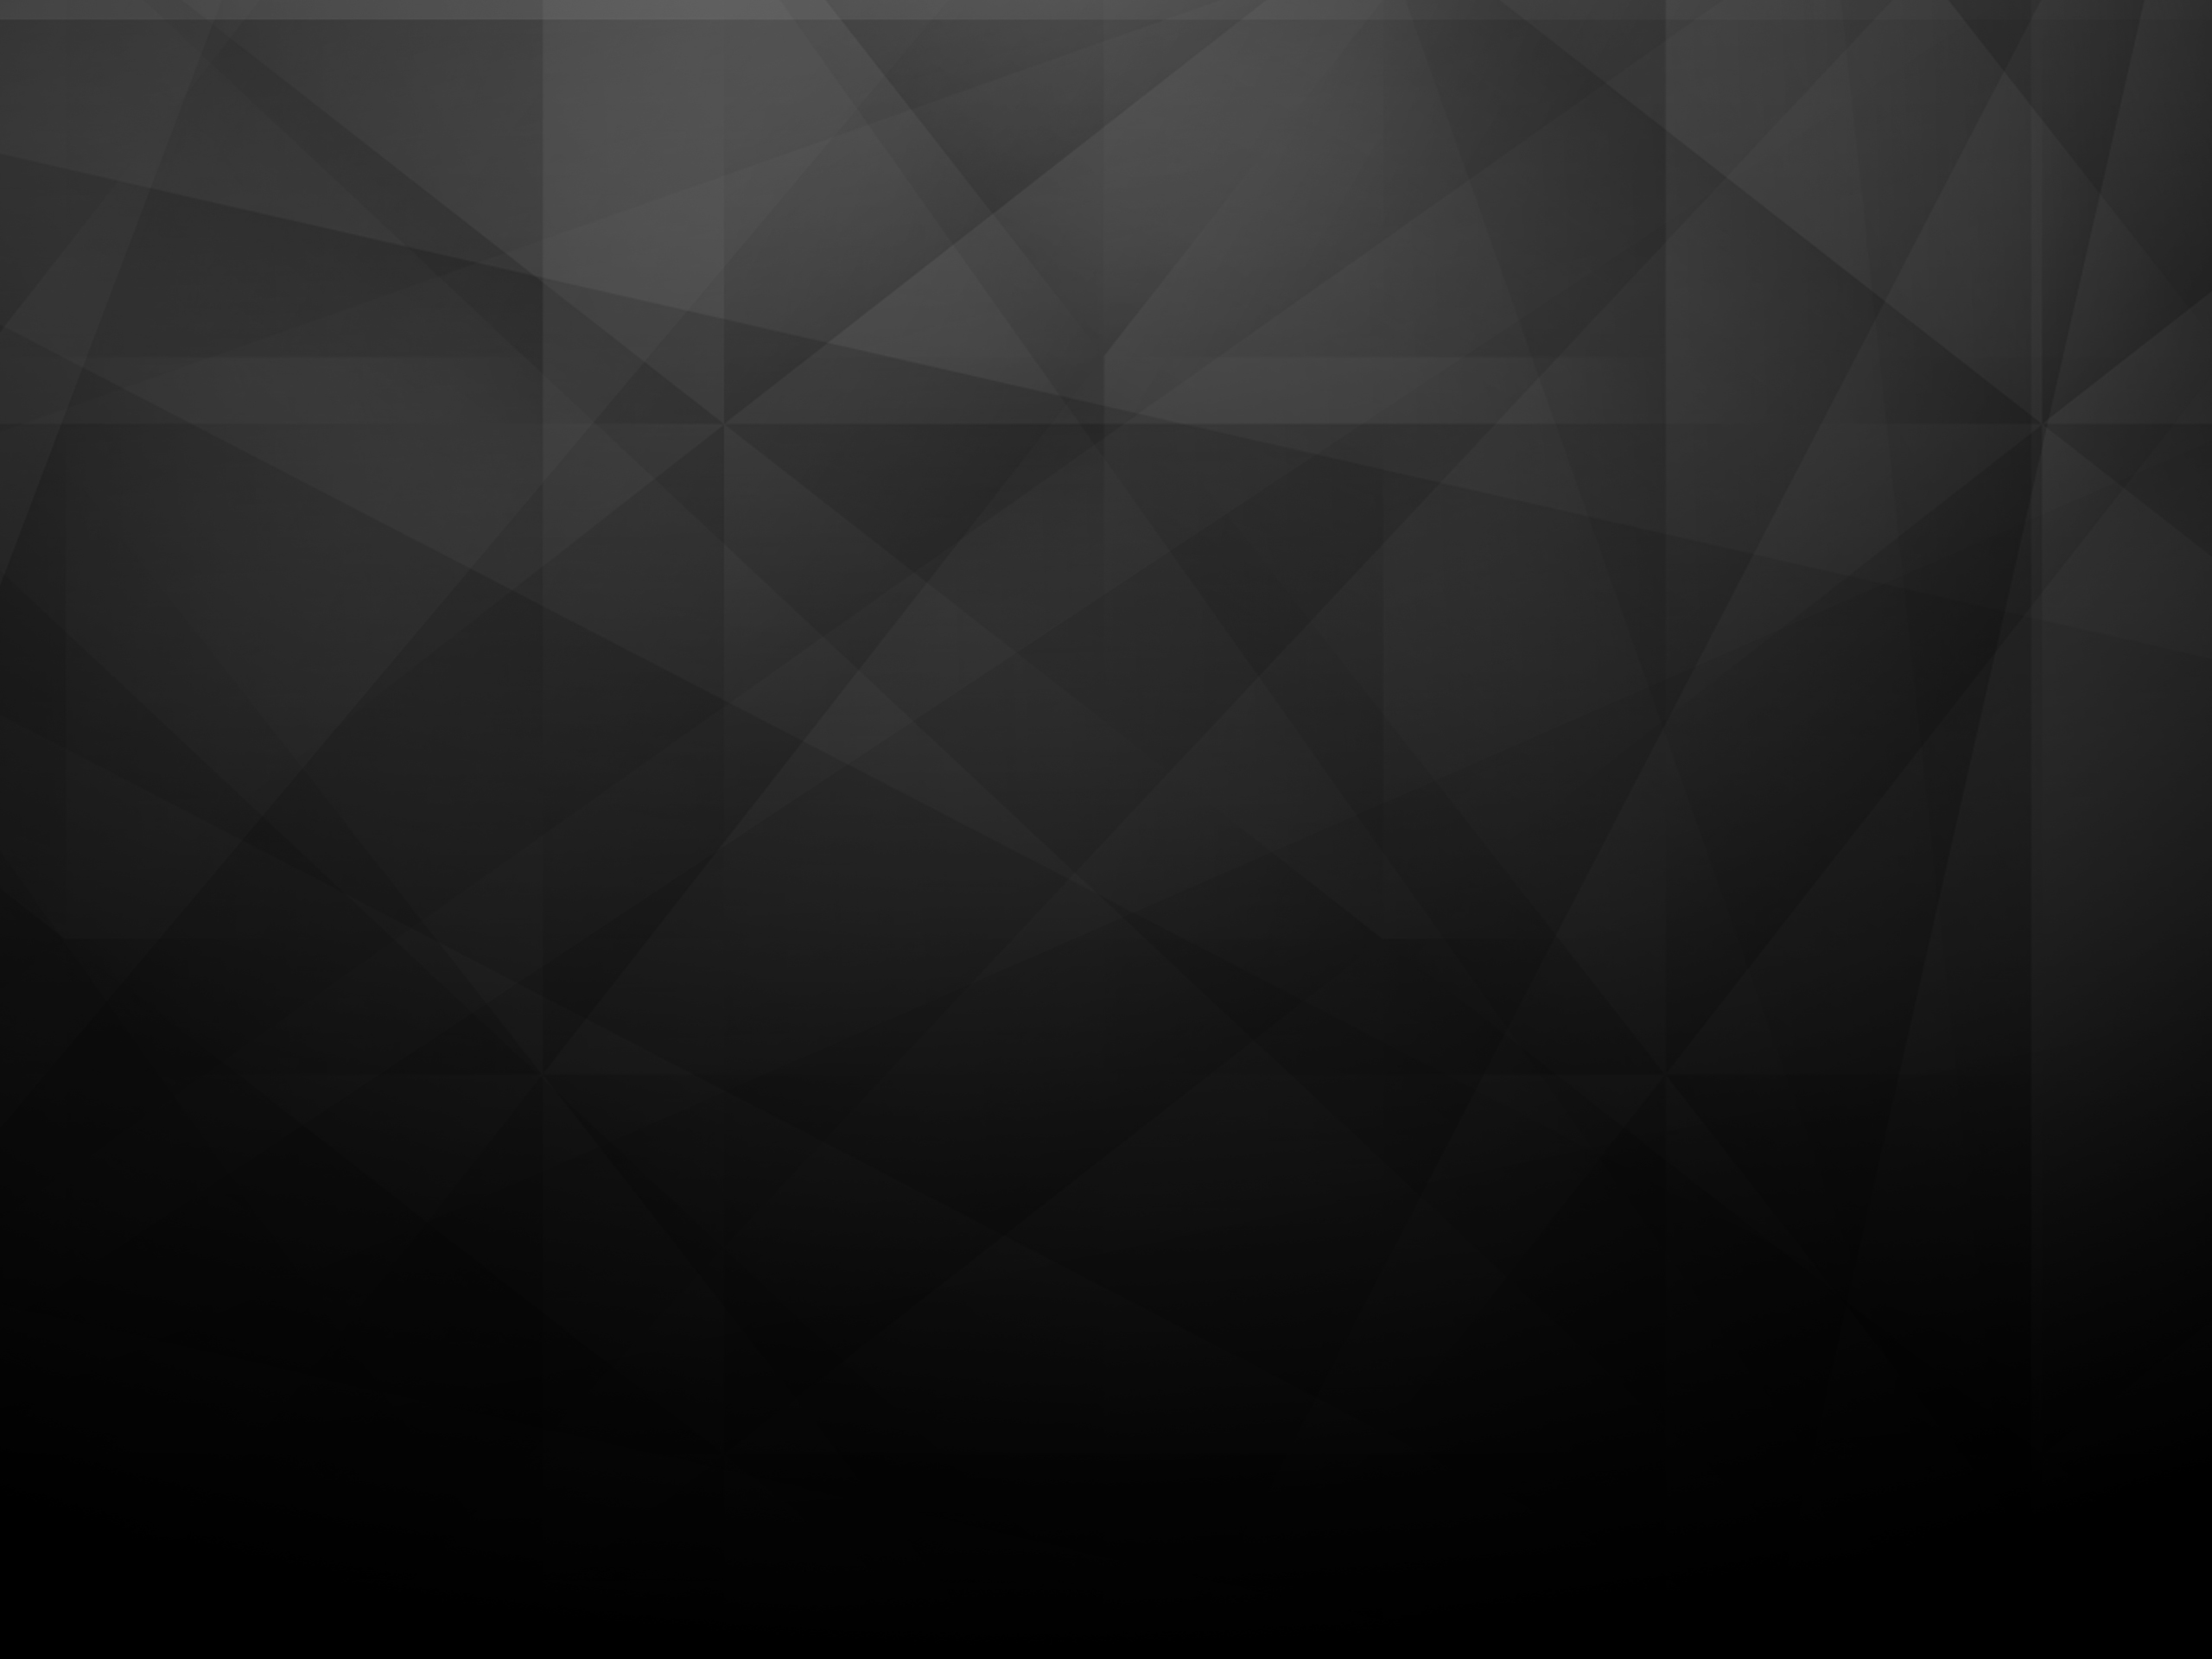 50 Black Wallpaper In FHD For Download For Android 2560x1920